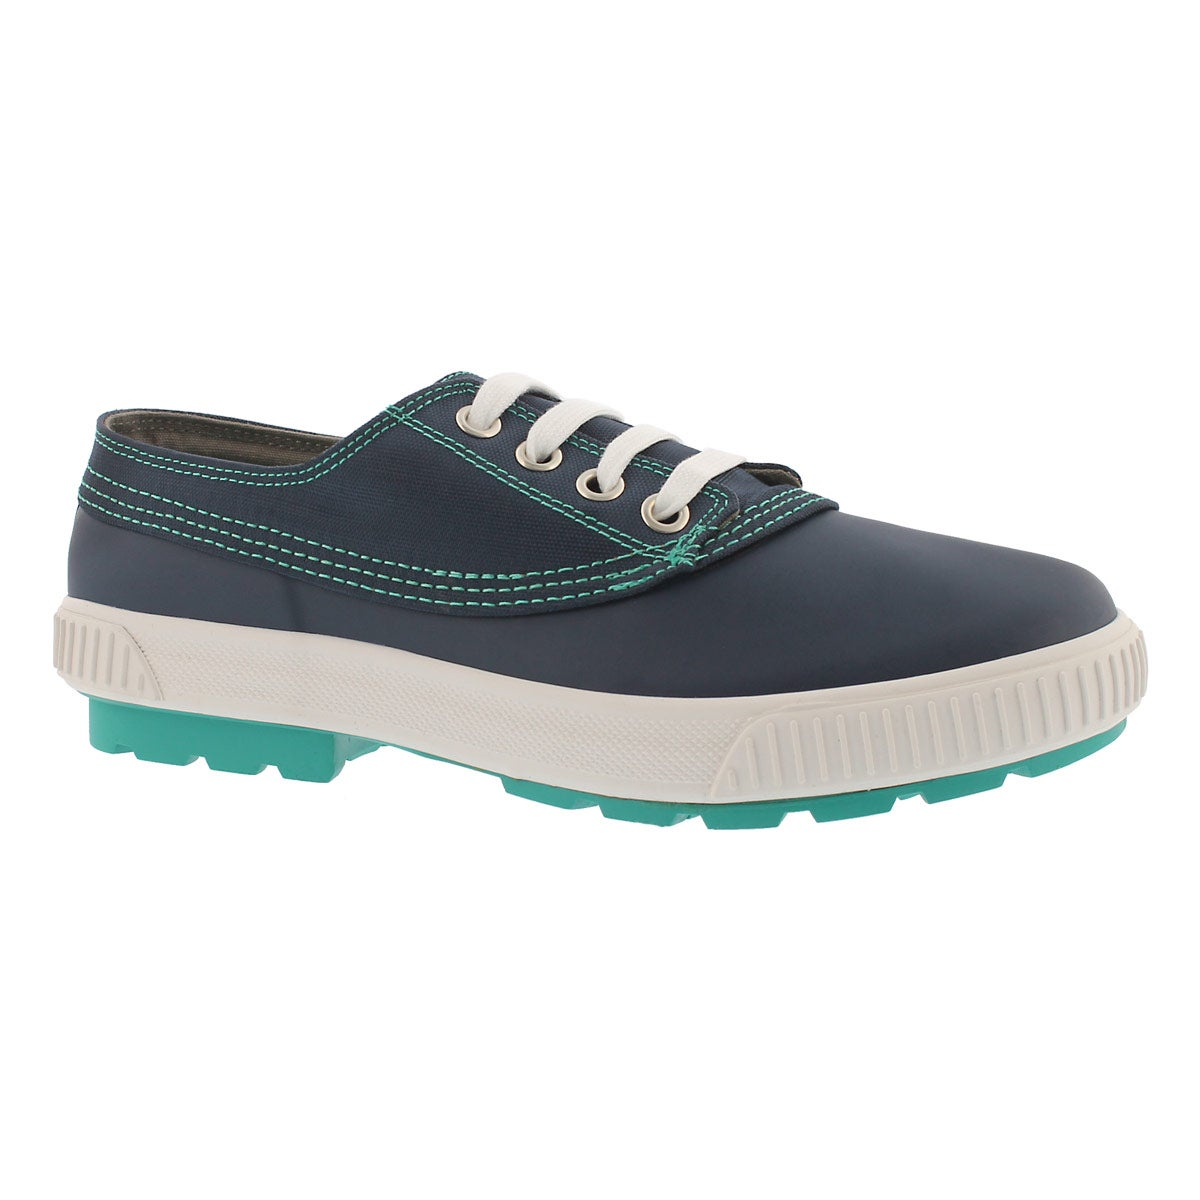 Women's DASH navy waterproof lace up duckies